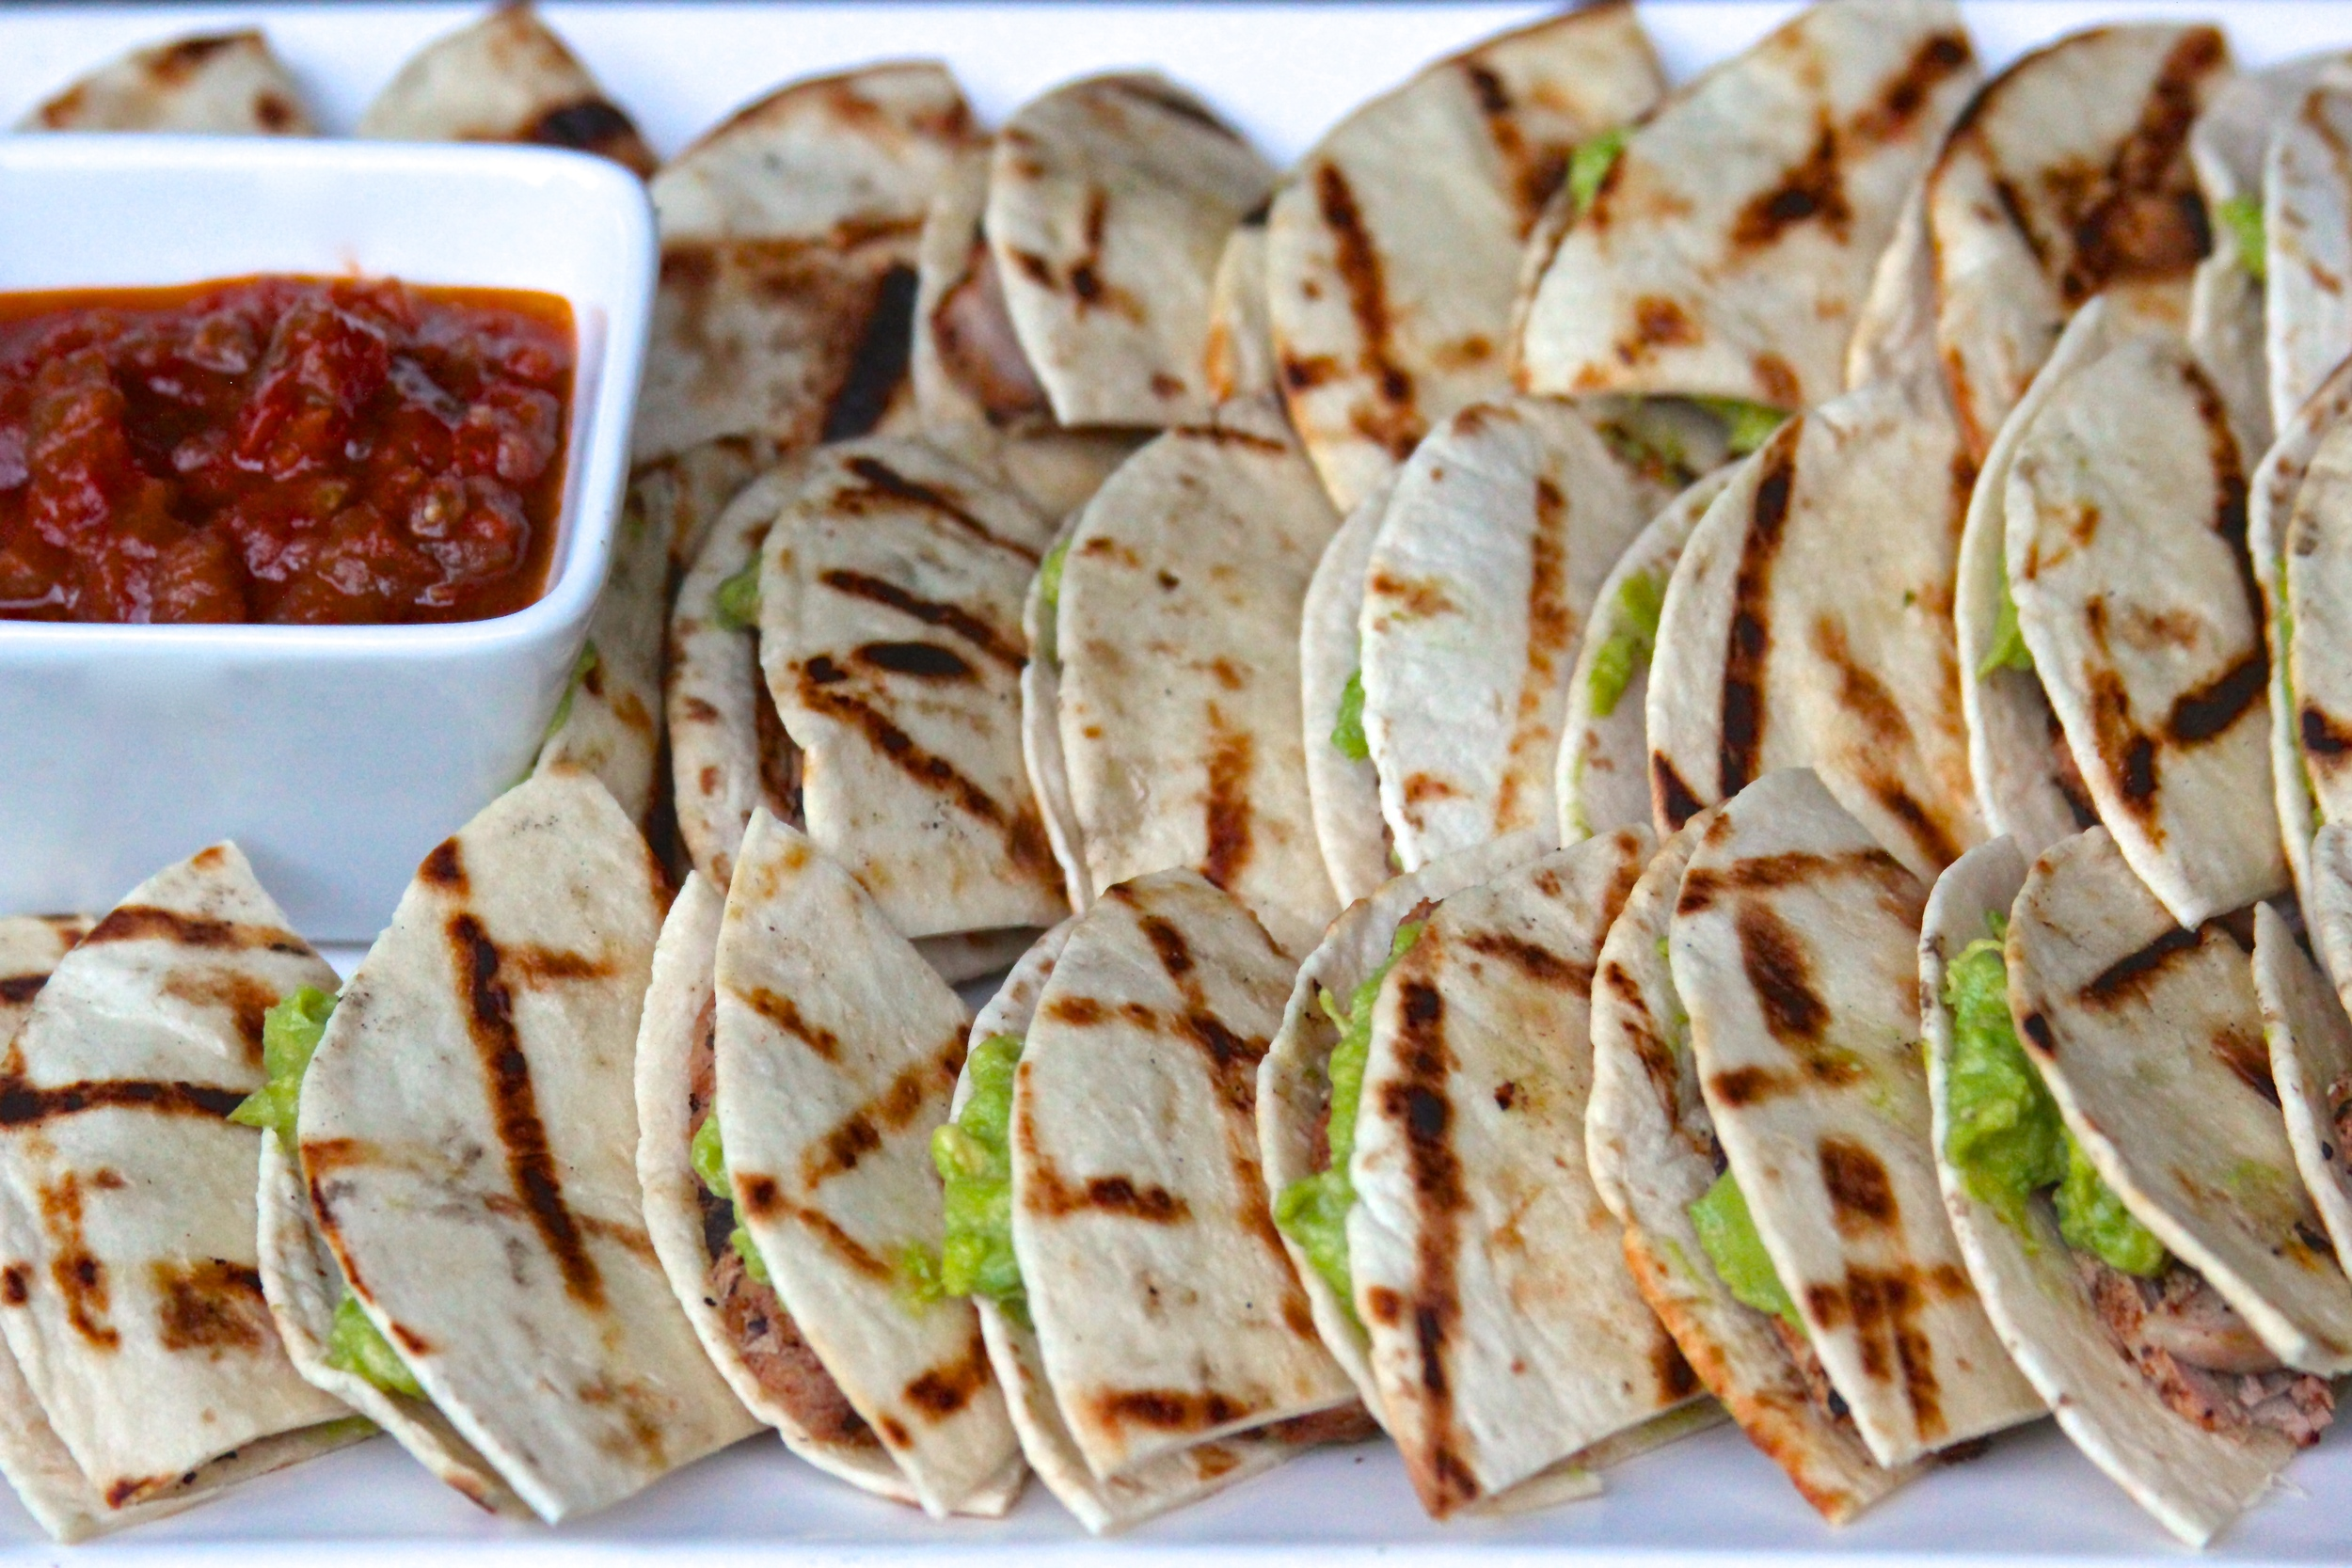 Grilled Pork Quesadilla Bites with Grilled Guacamole